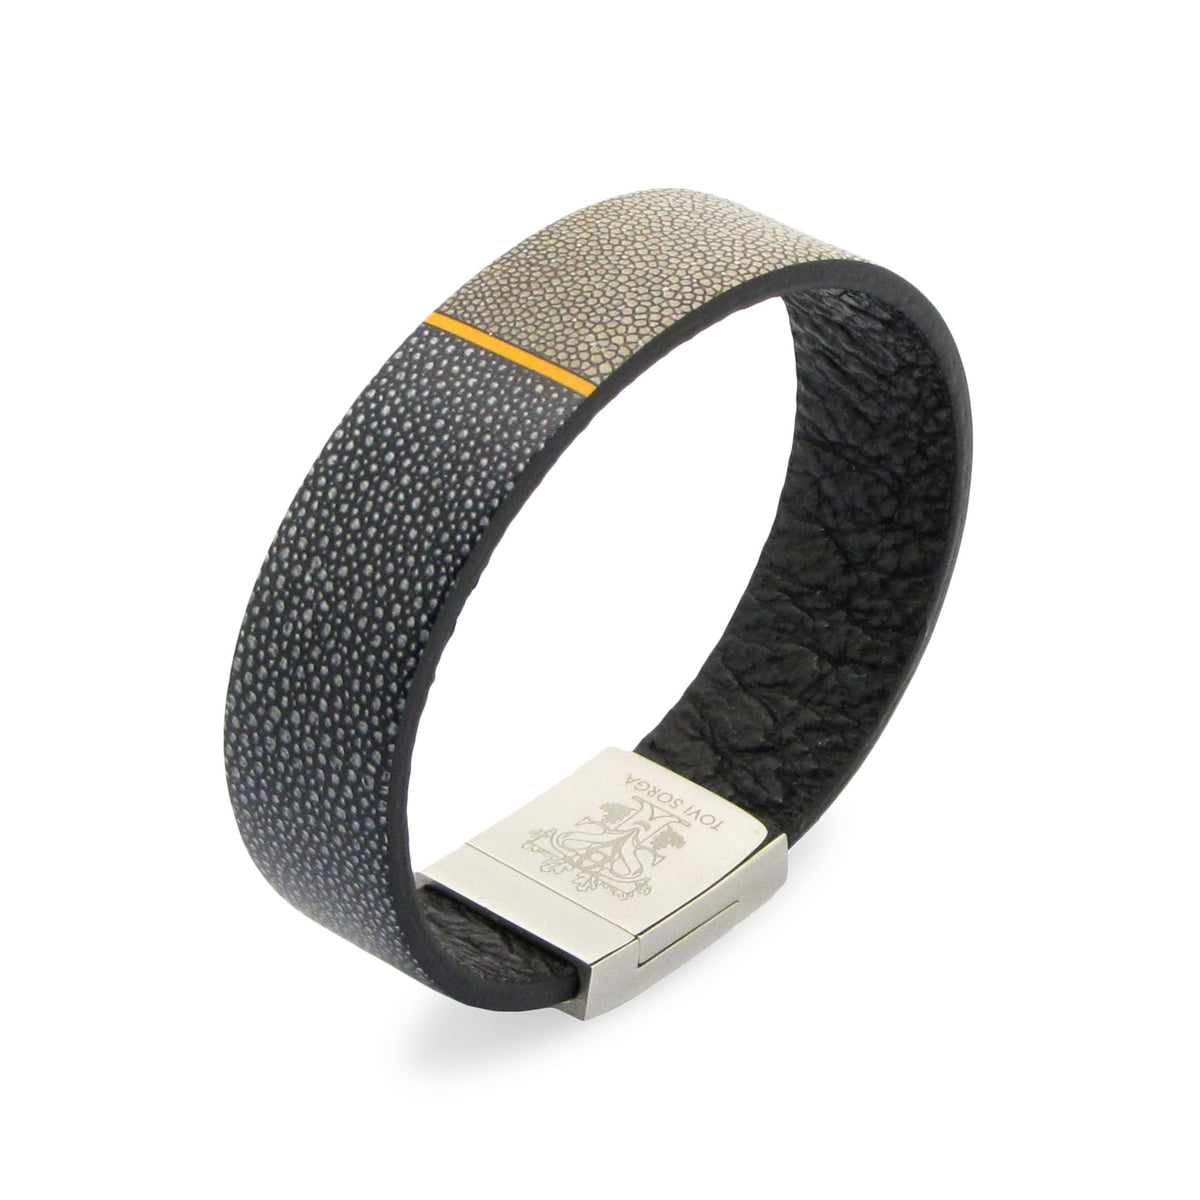 Leather Contactless Payment Bracelet: Ray Skin Contactless Payment Bracelet Tovi Sorga Extra-Small Grey